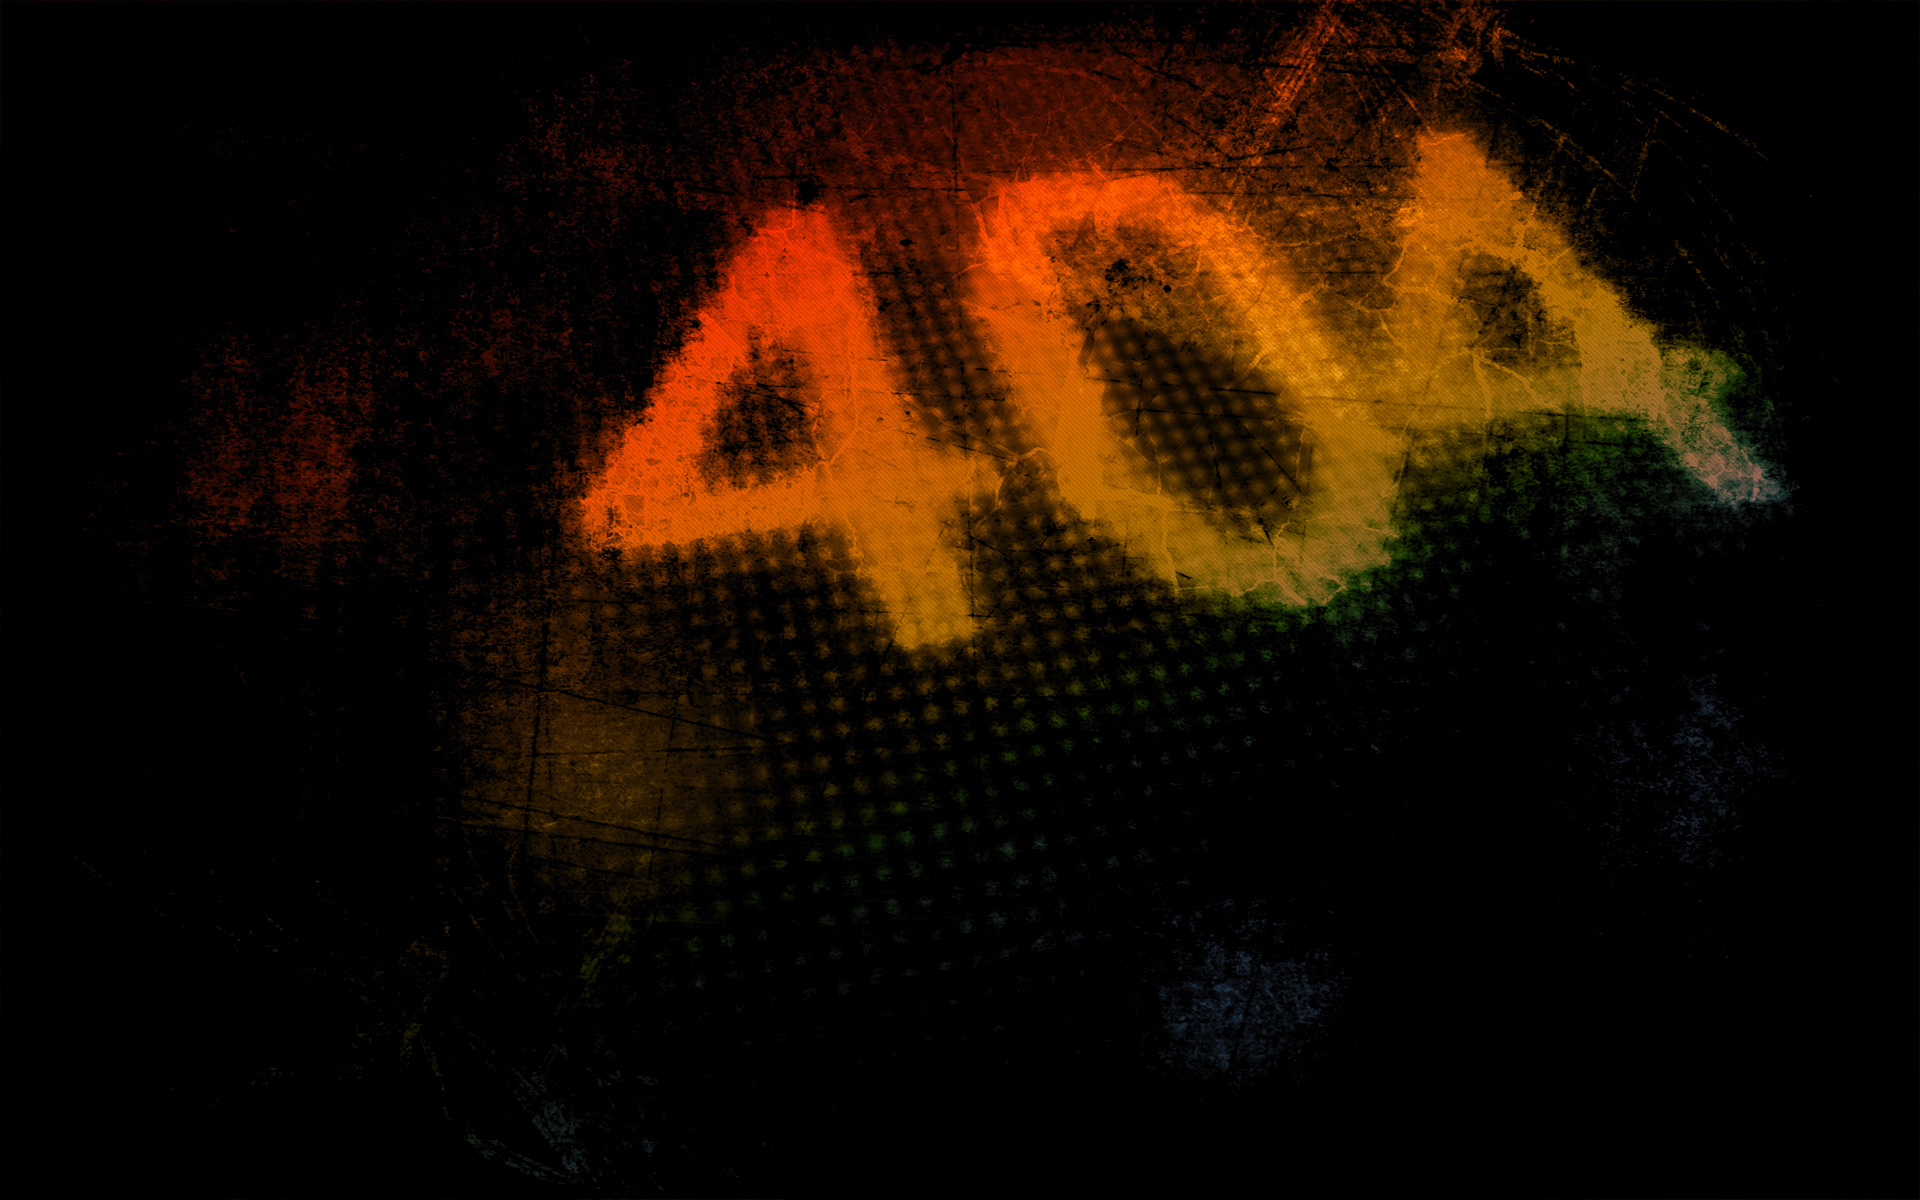 The favorite wallpaper all web developers, the 404 error on the desktop (1920x1200 px).